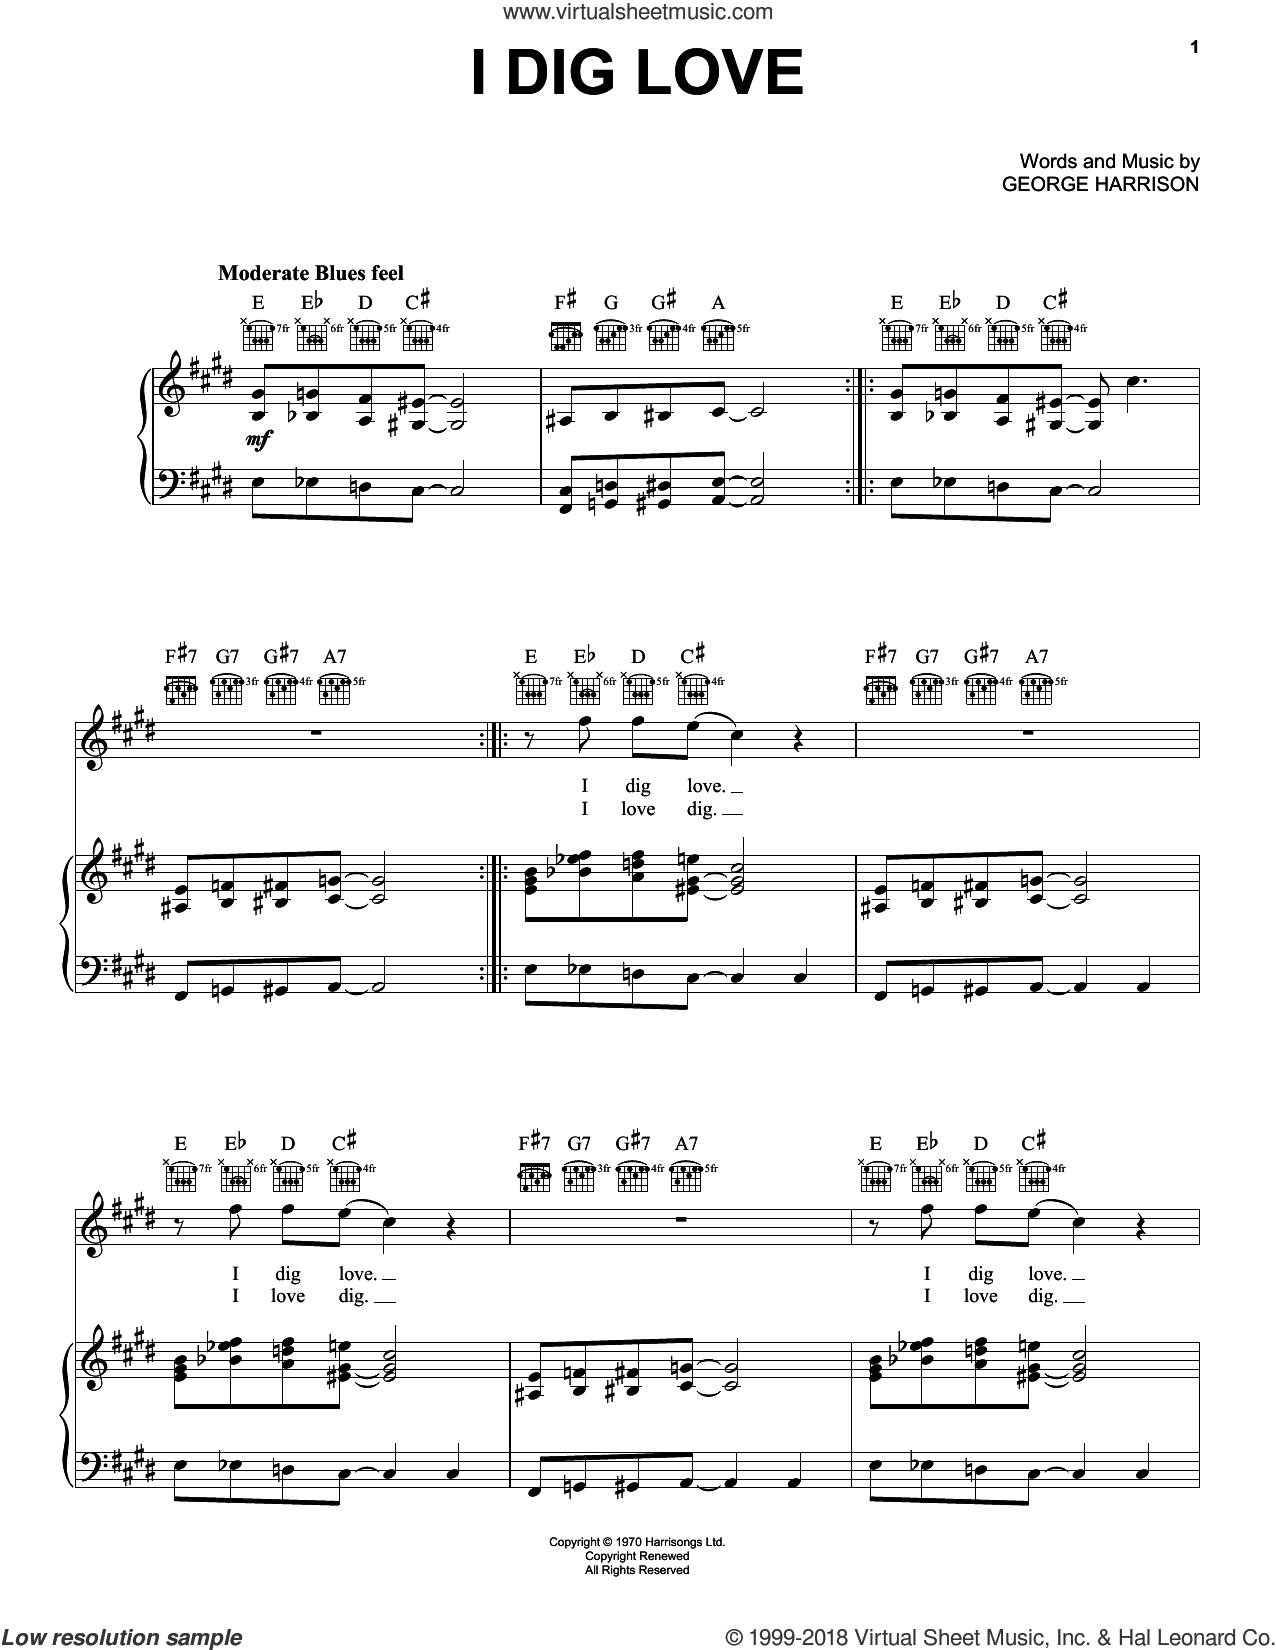 I Dig Love sheet music for voice, piano or guitar by George Harrison. Score Image Preview.